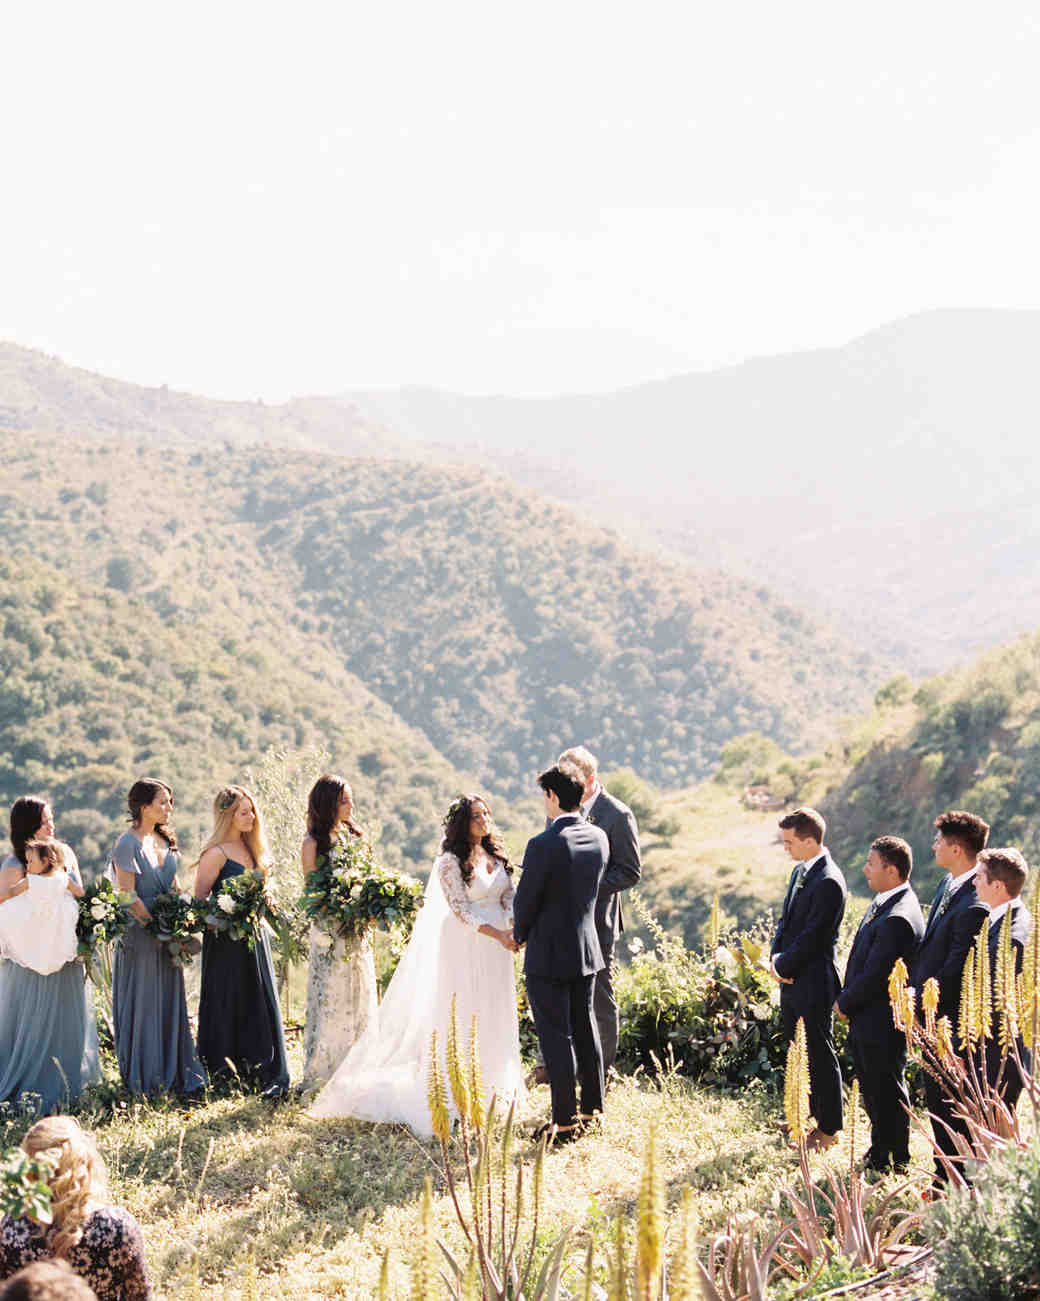 daphne jack wedding spain ceremony on mountains